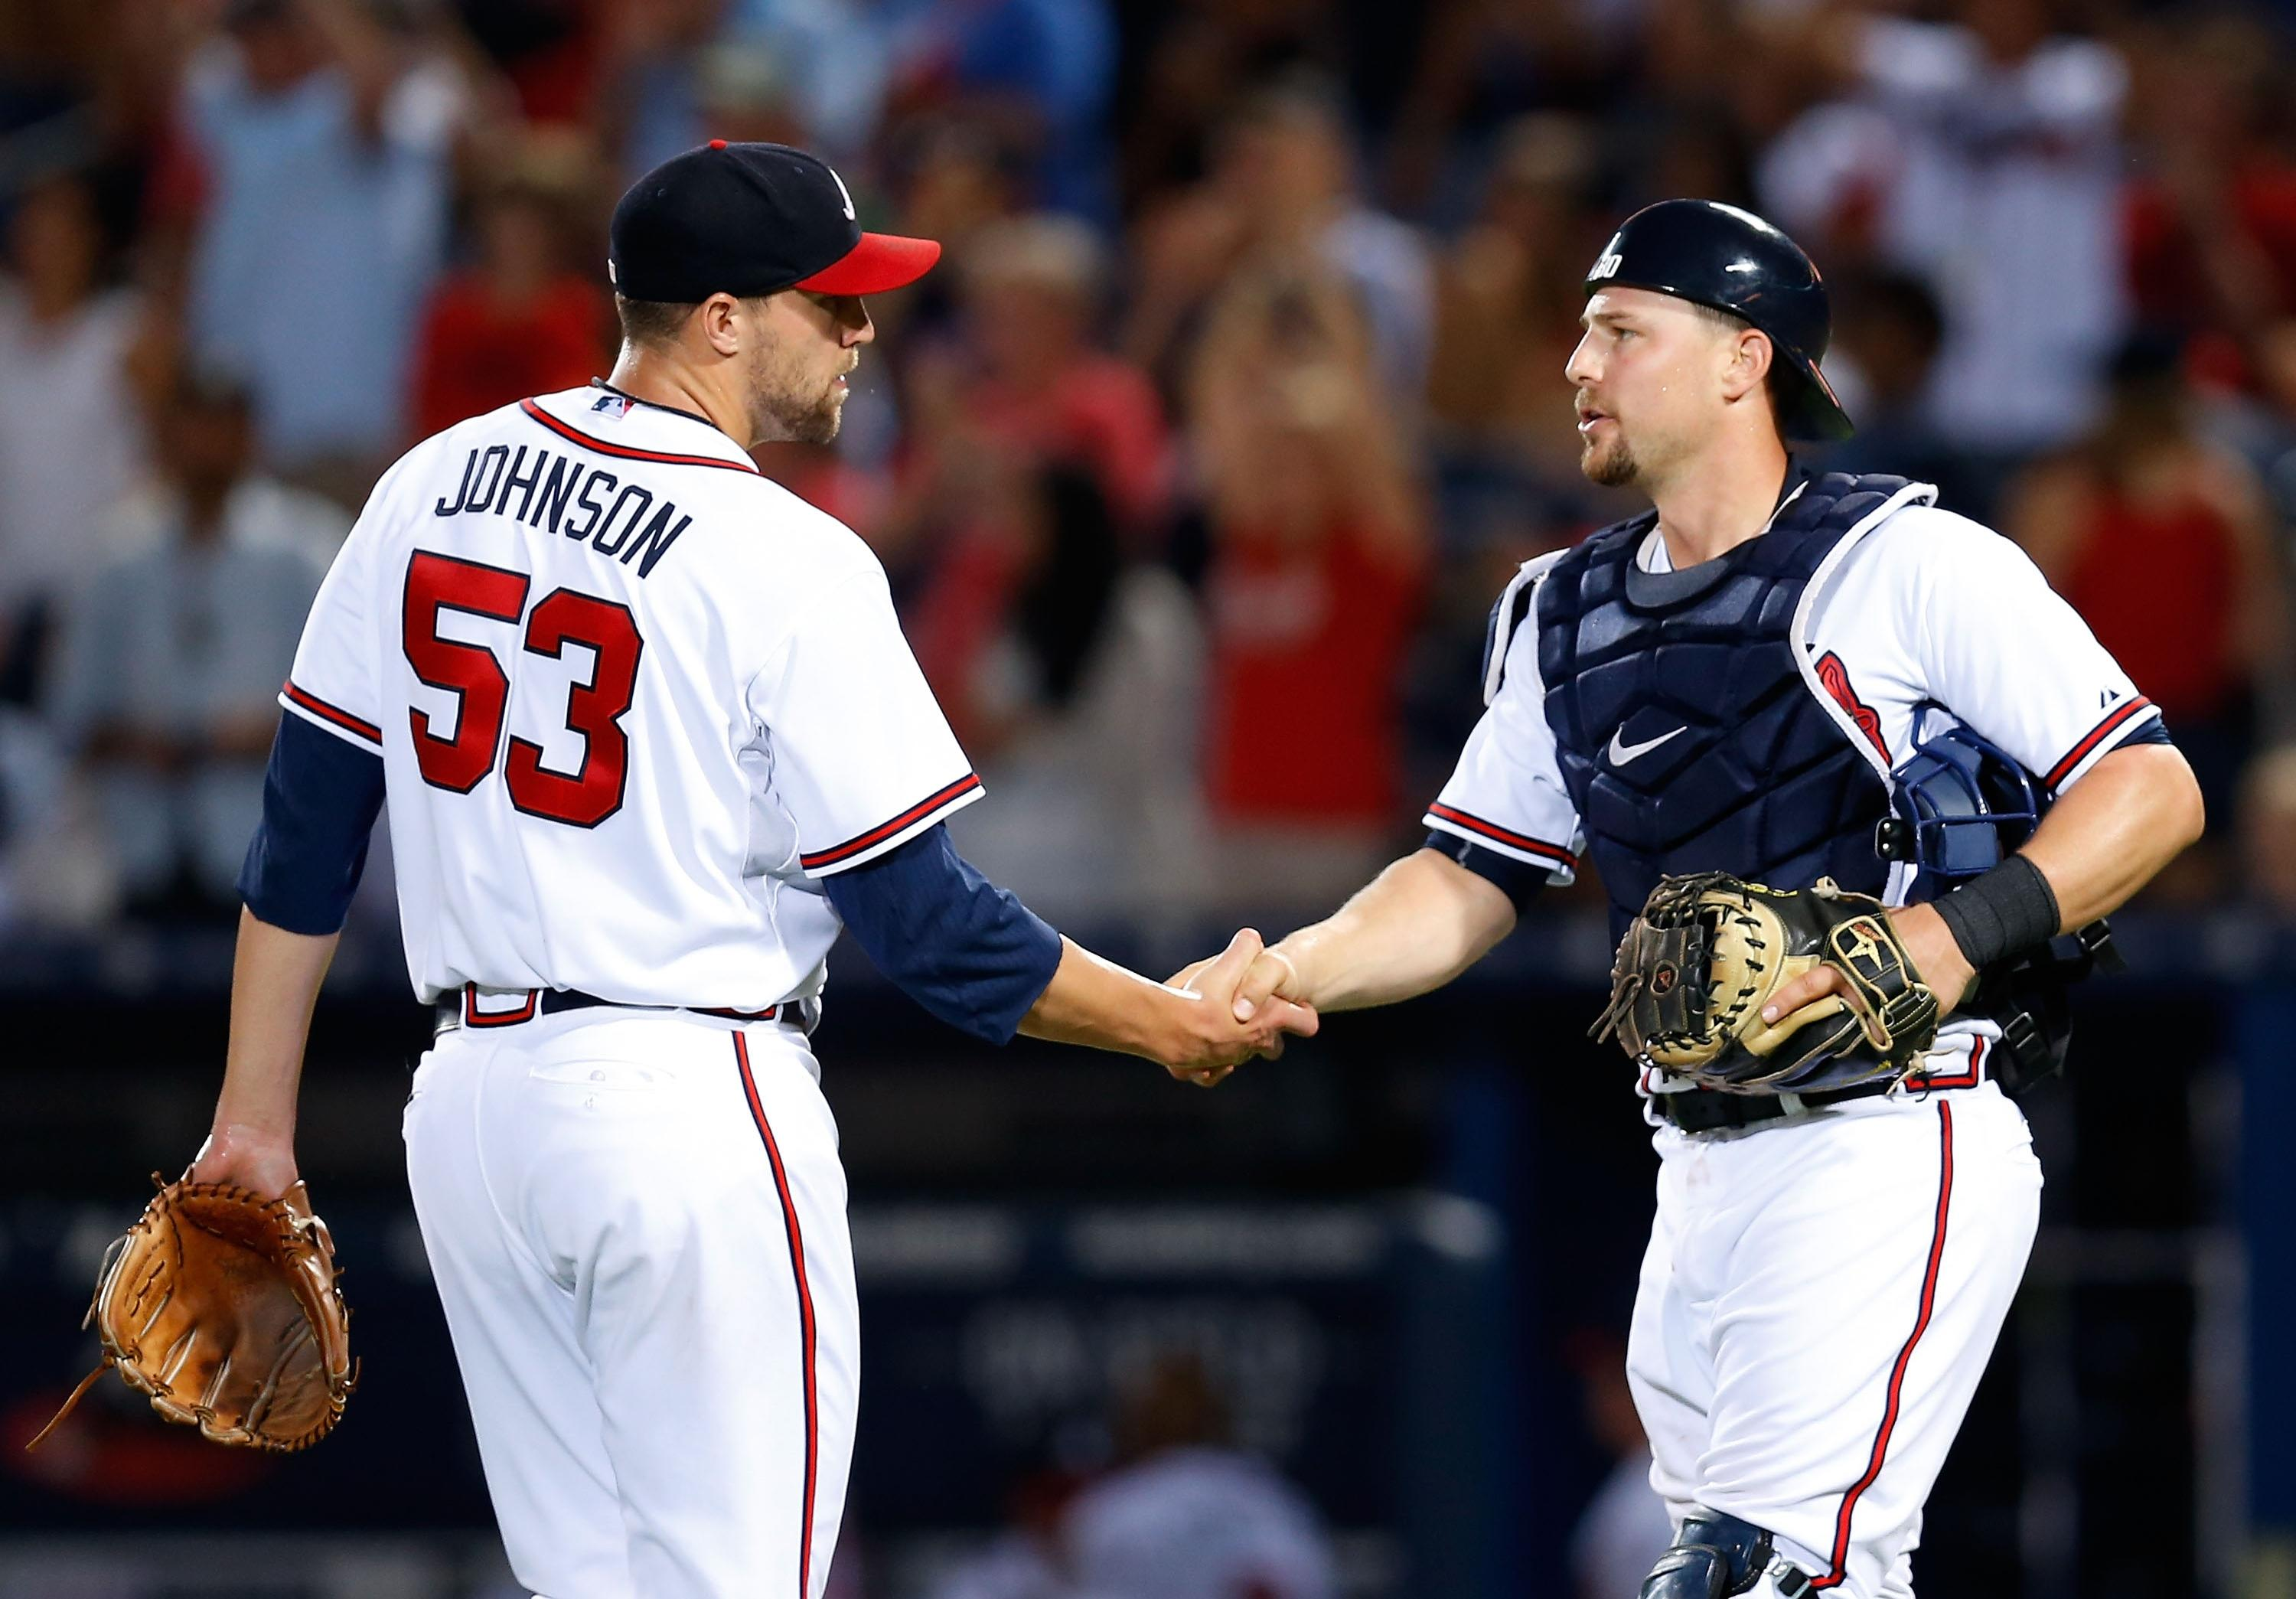 Hot Stove Digest: Jim Johnson returns to Braves on a one-year deal